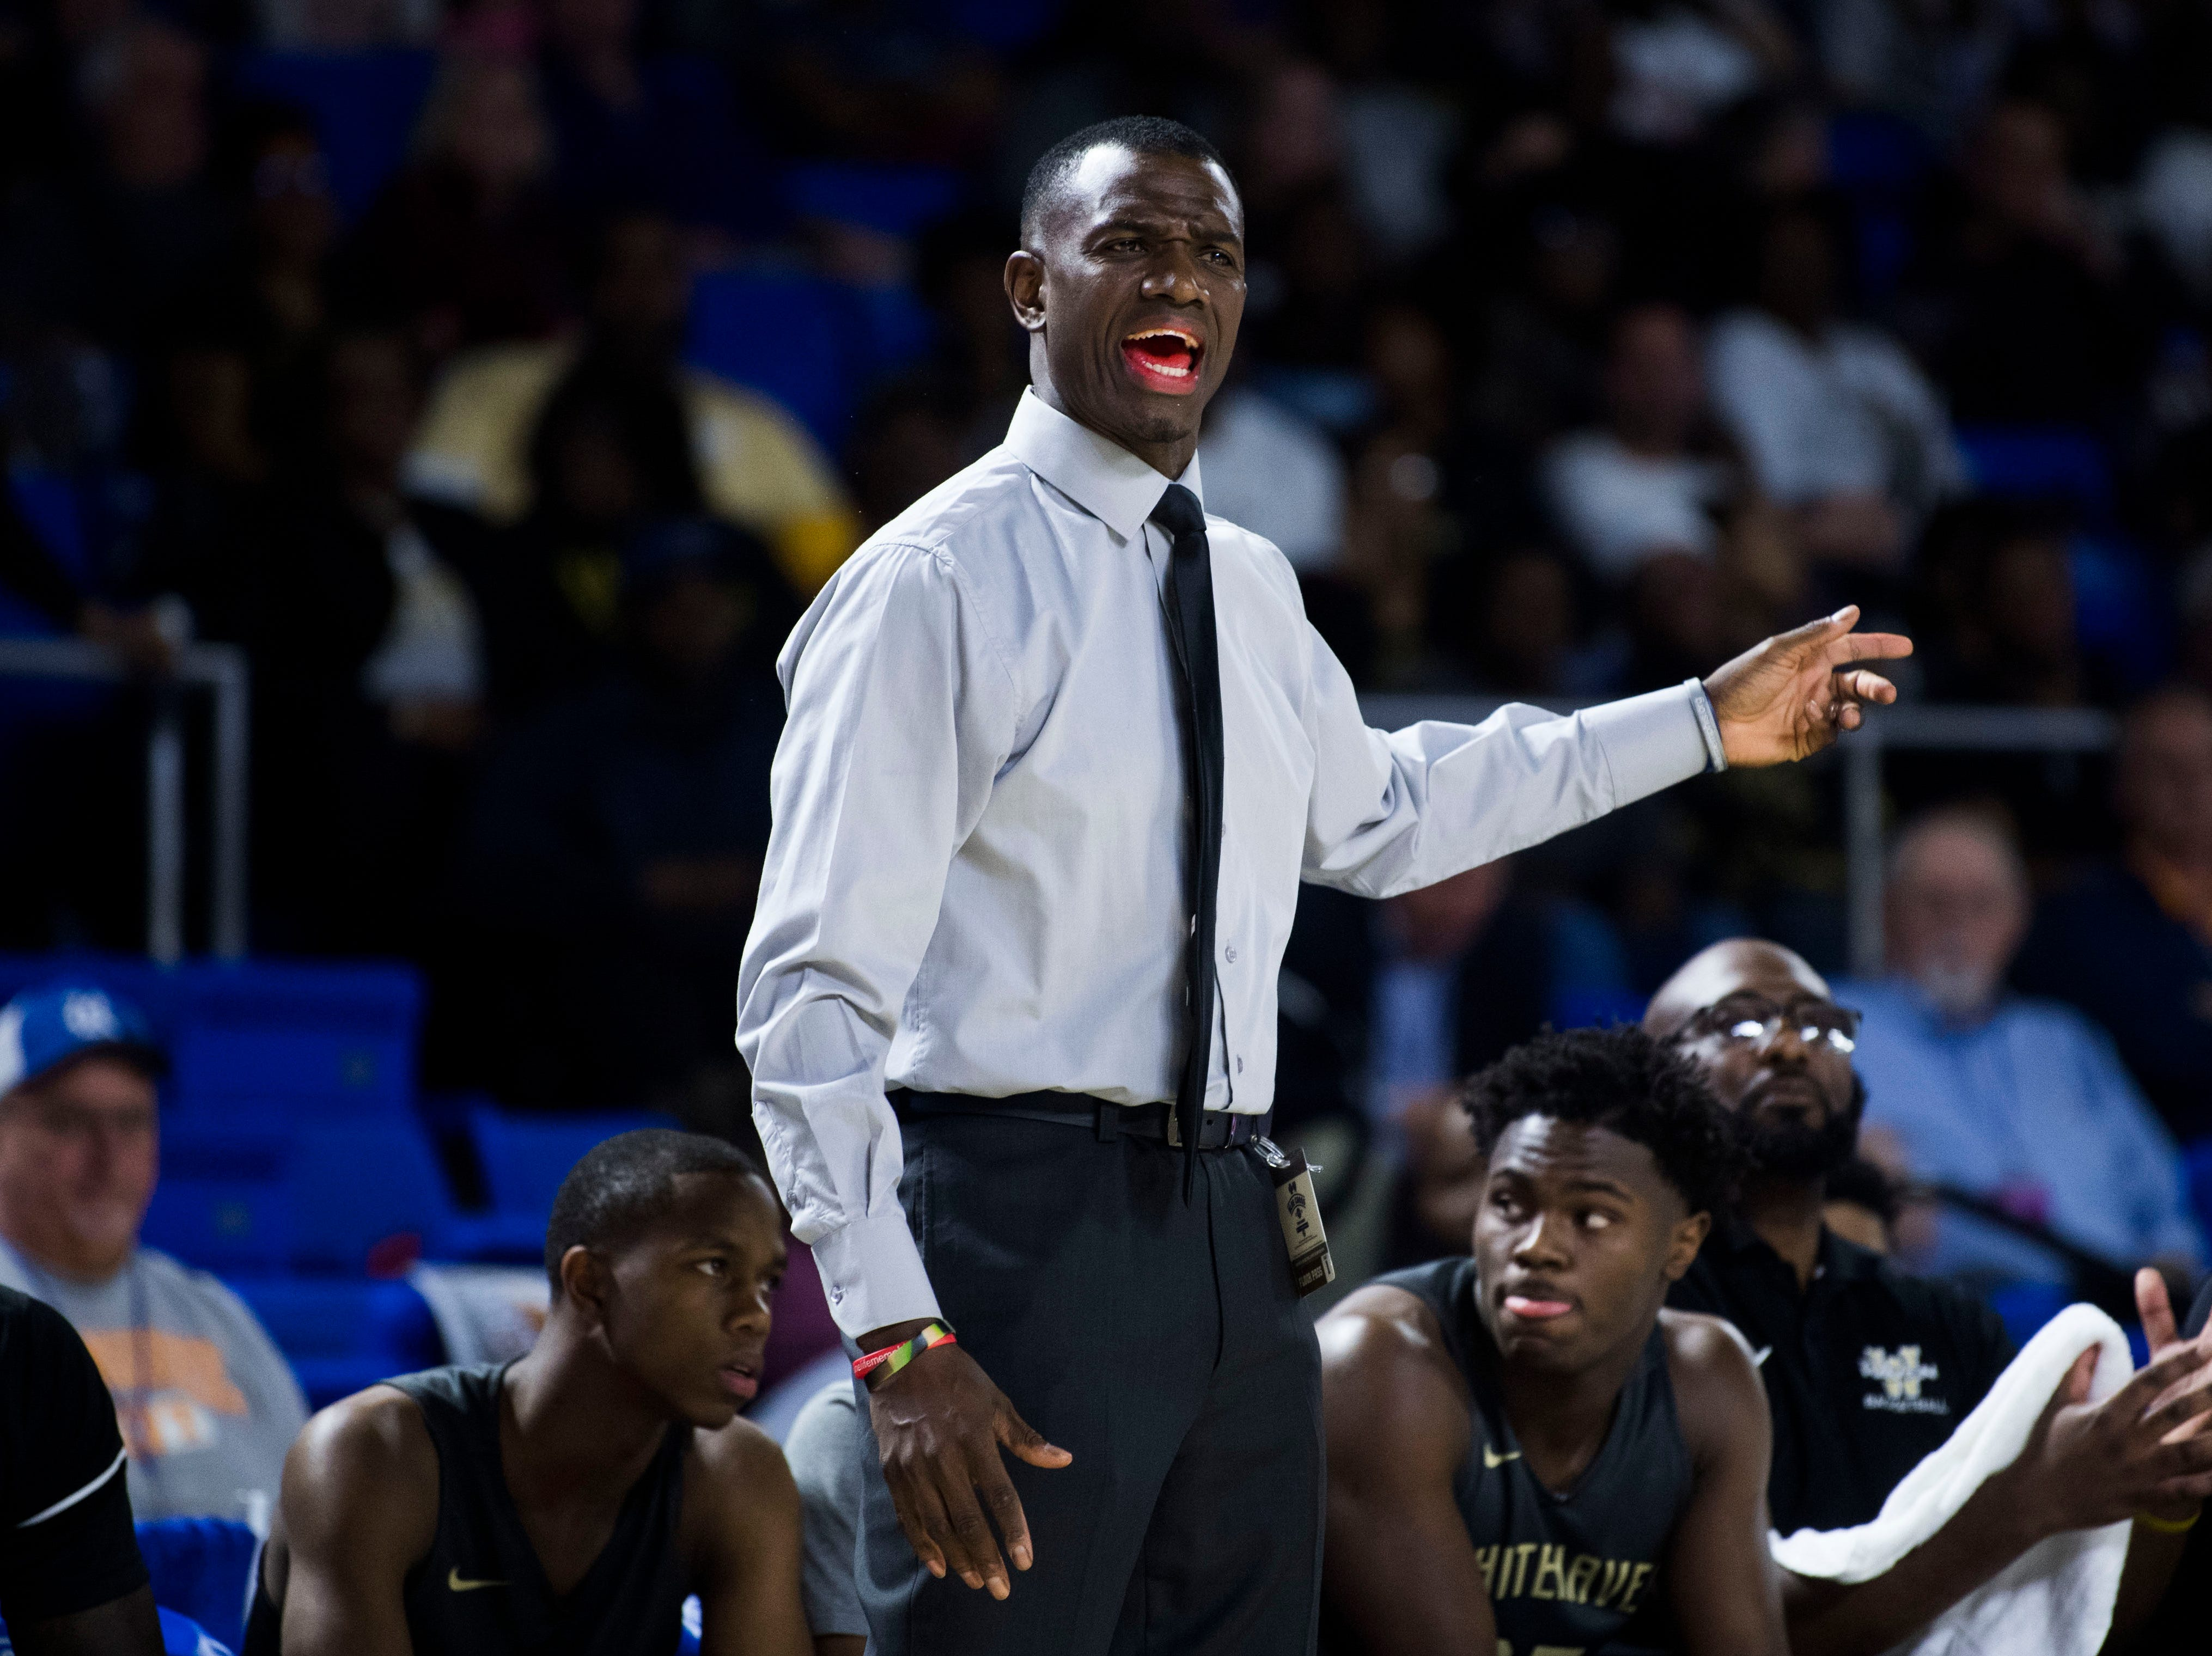 Whitehaven's head coach Faragi Phillips yells to the court during a TSSAA AAA state quarterfinal game between Sevier County and Whitehaven at the Murphy Center in Murfreesboro, Wednesday, March 13, 2019.